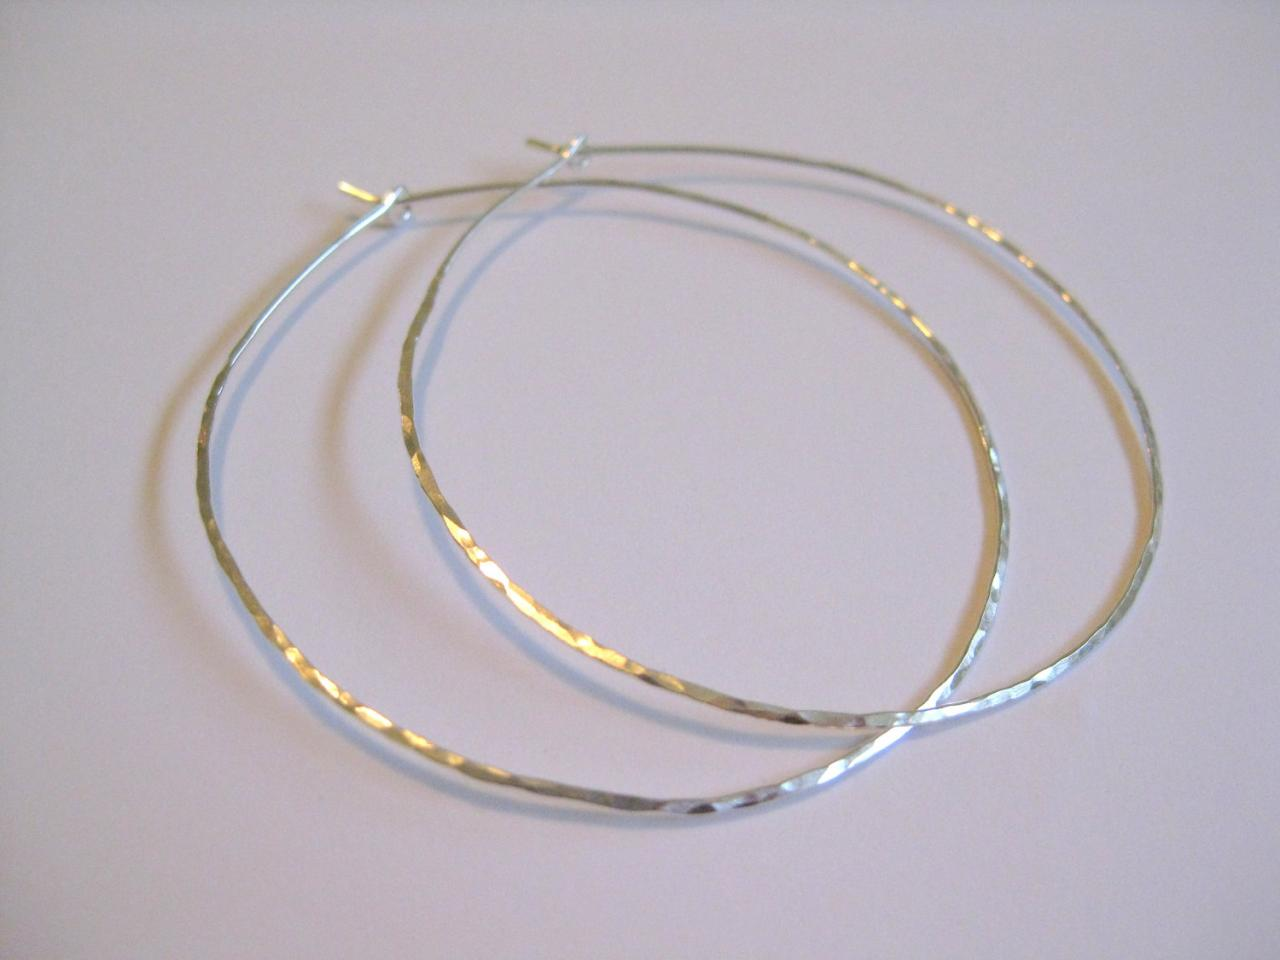 Silver Hammered Hoop Earrings Large Hoops